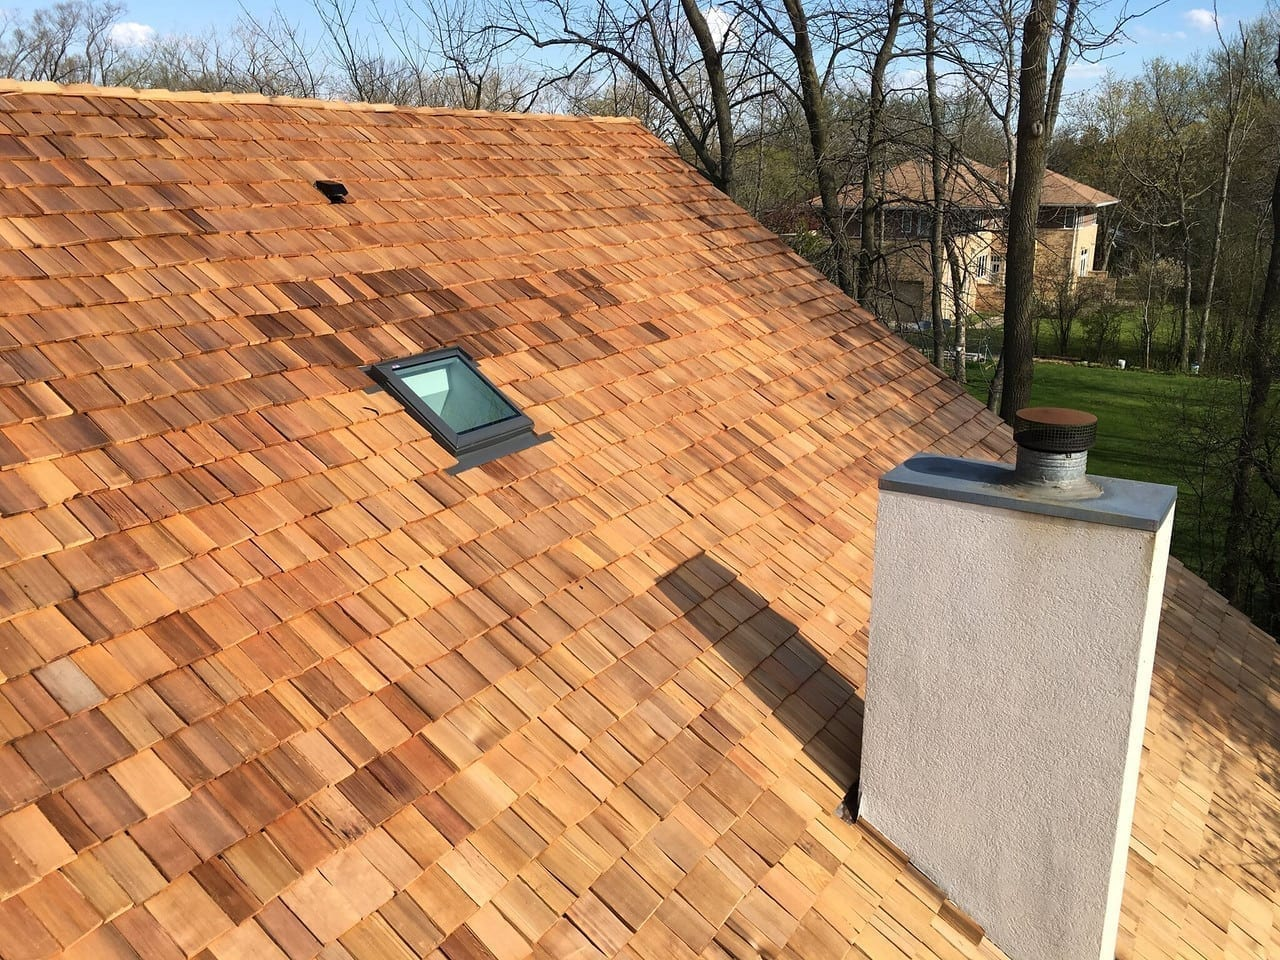 Save money on your bills with energy efficient cedar roofing